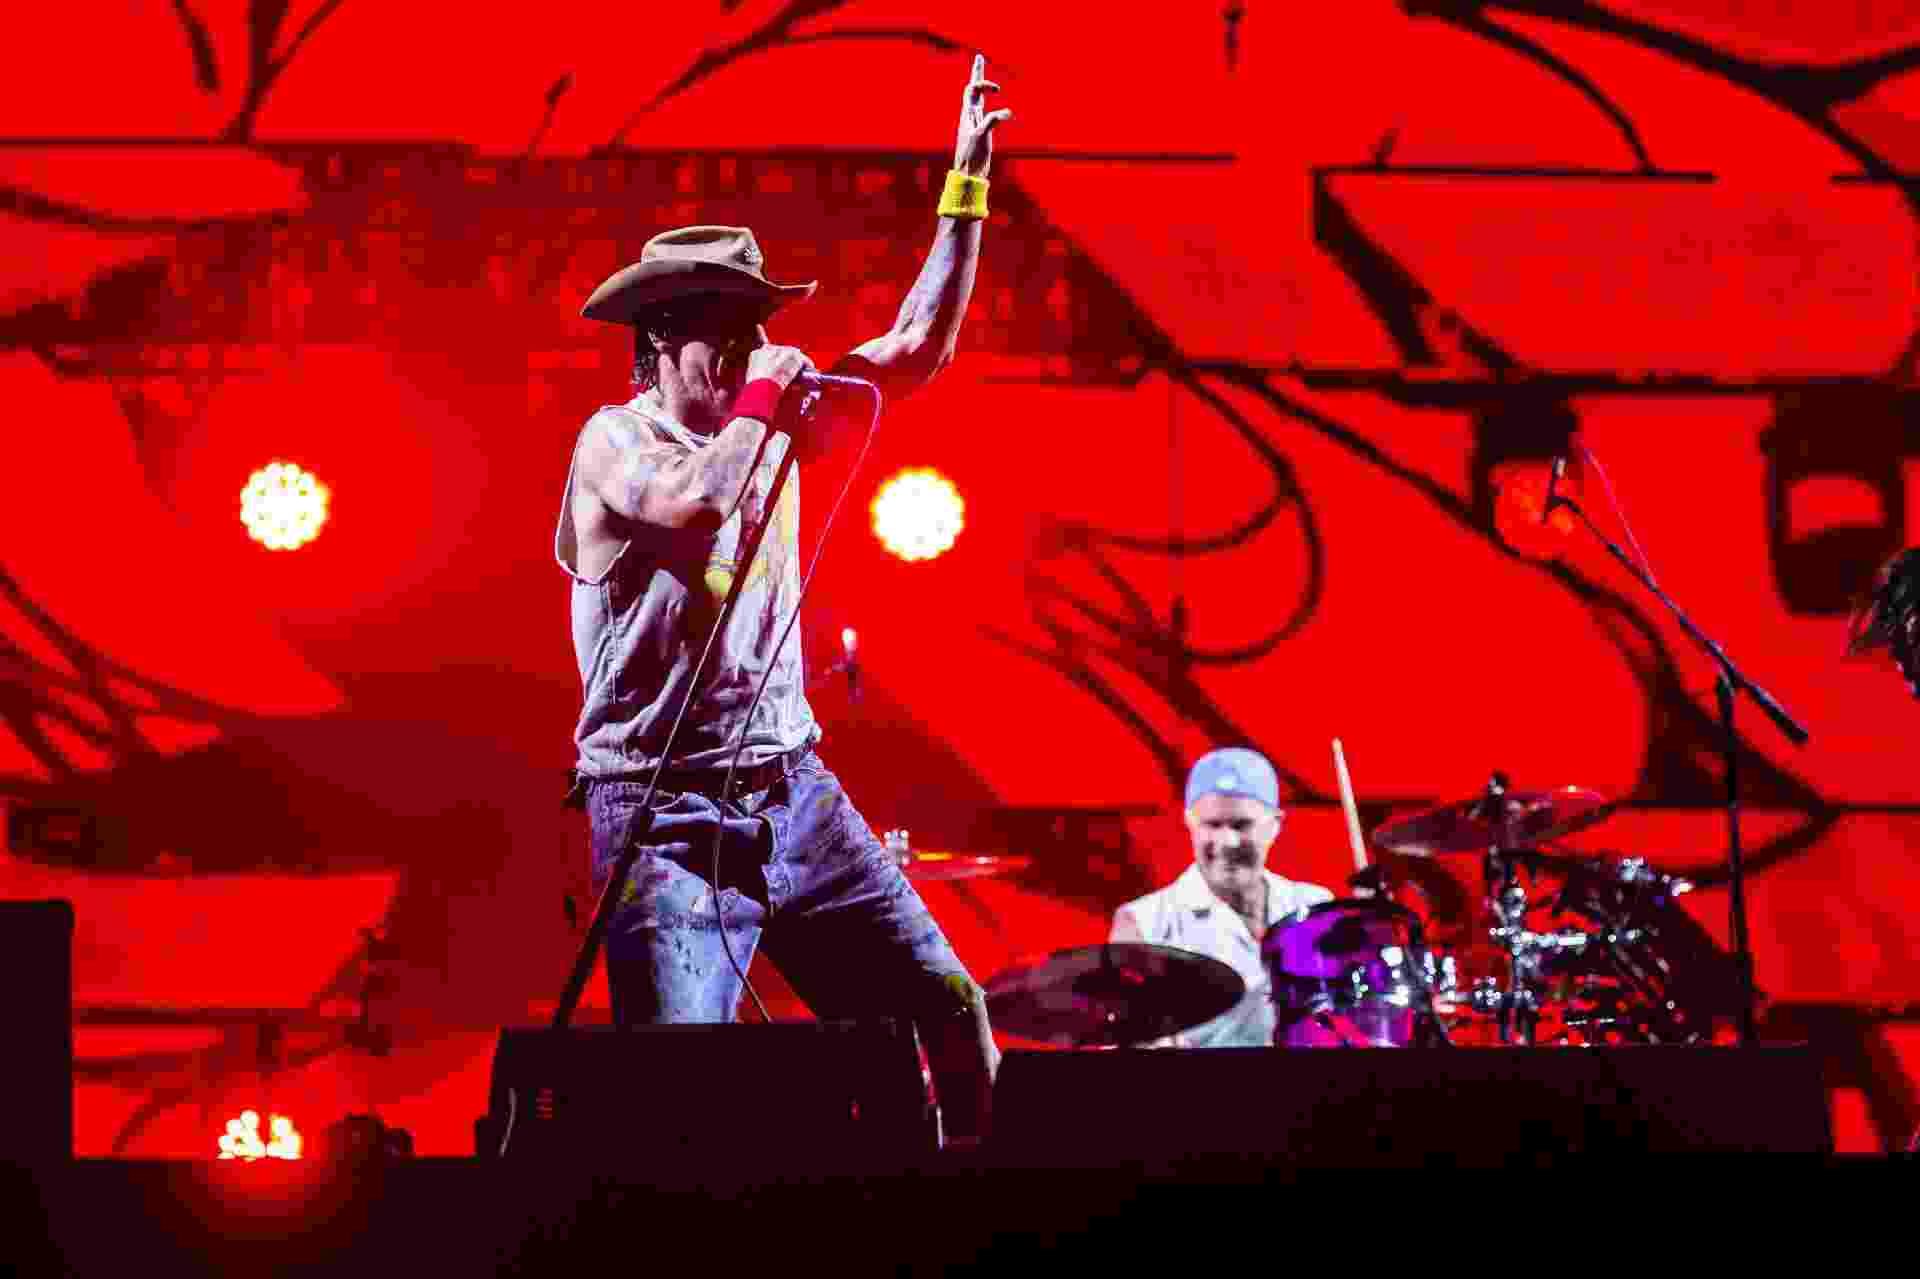 Vocalista Anthony Kiedis durante show da banda Red Hot Chili Peppers no Rock in Rio - Adriano Vizoni/Folhapress